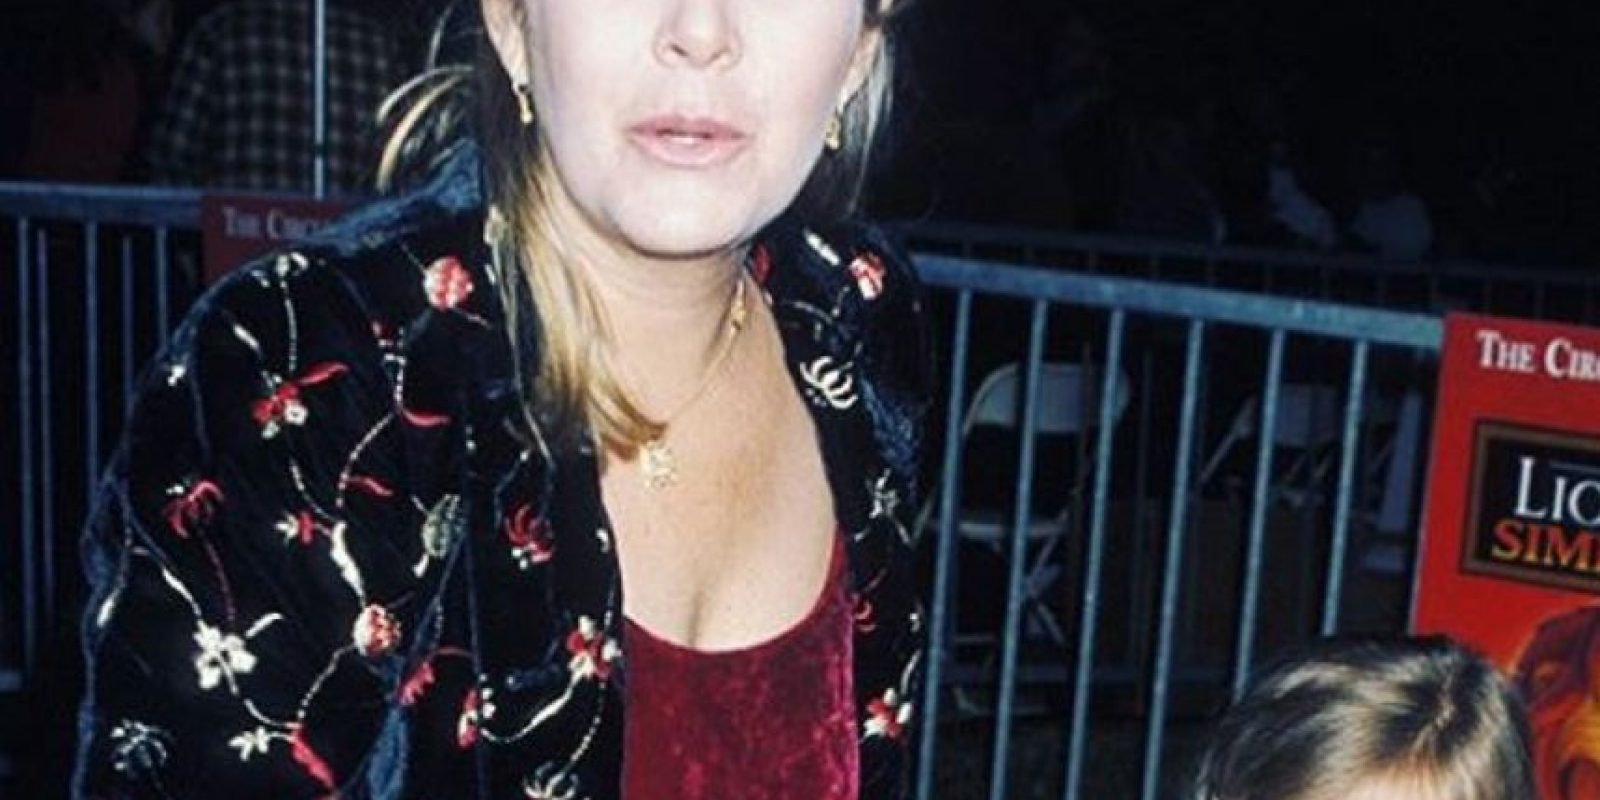 Billie nació en 1992. Foto: vía Getty Images